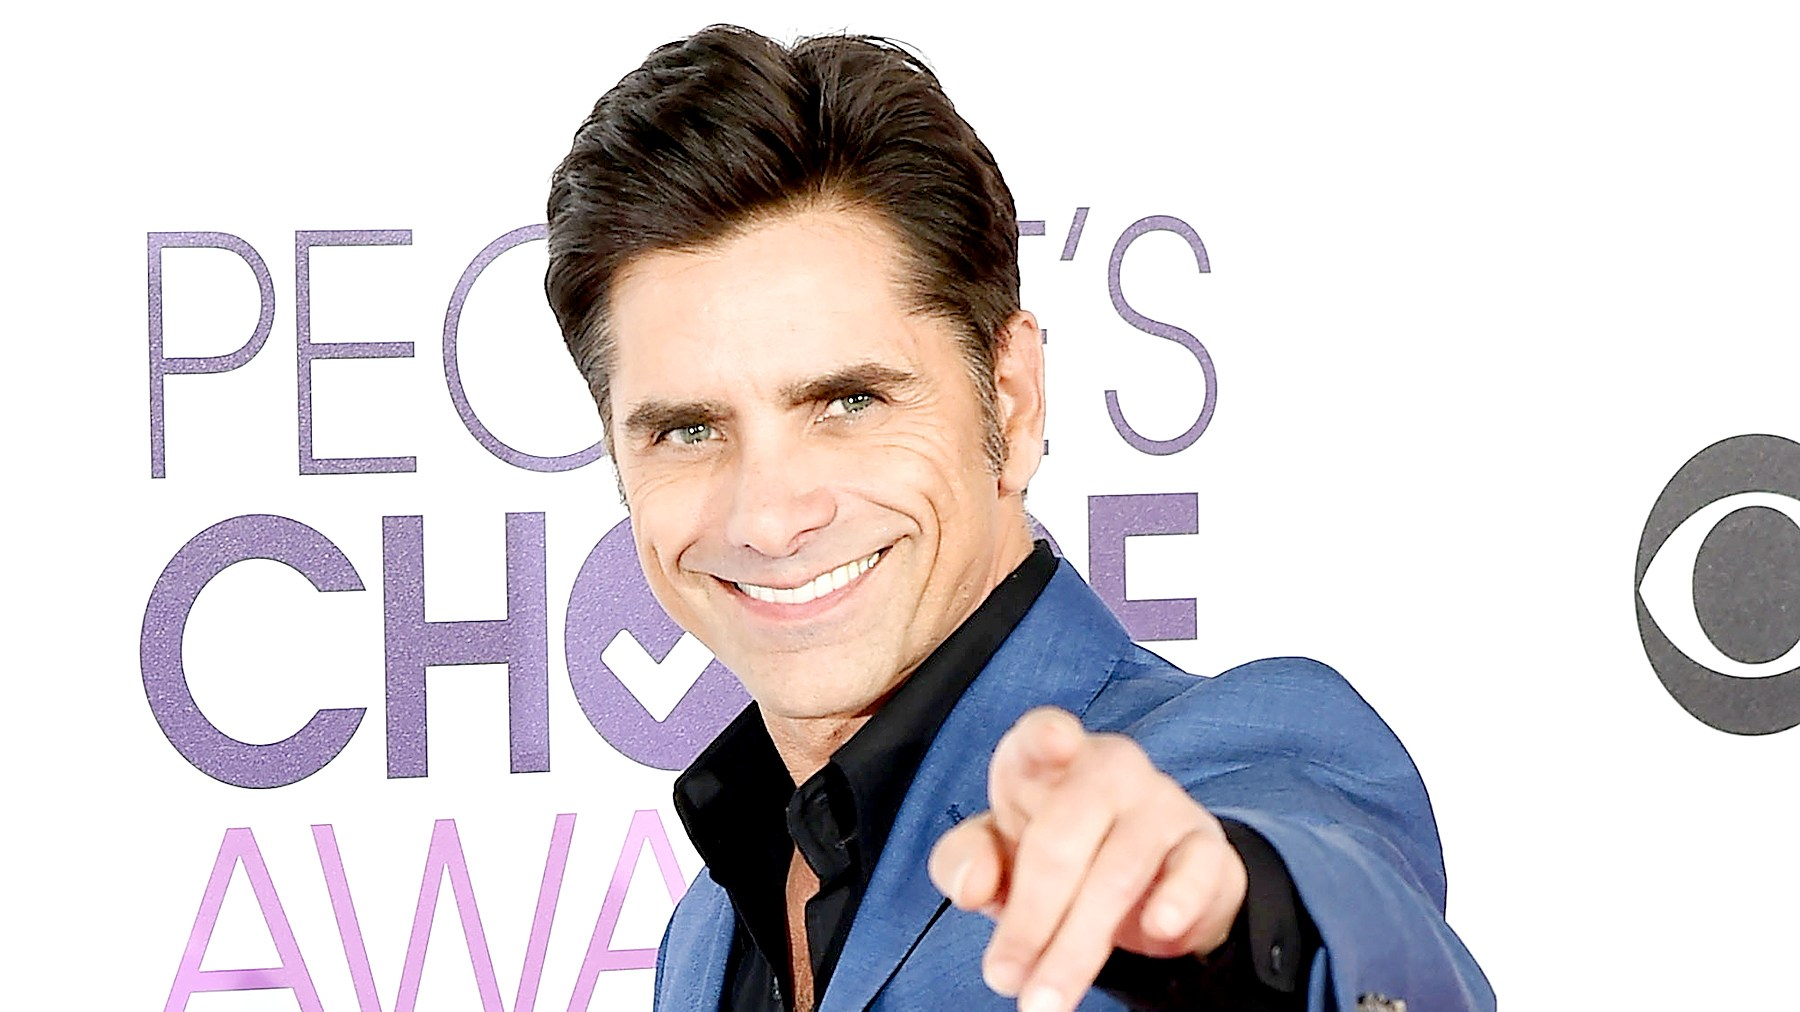 John Stamos attends the People's Choice Awards 2017 - Arrivals at Microsoft Theater on January 18, 2017 in Los Angeles, California.